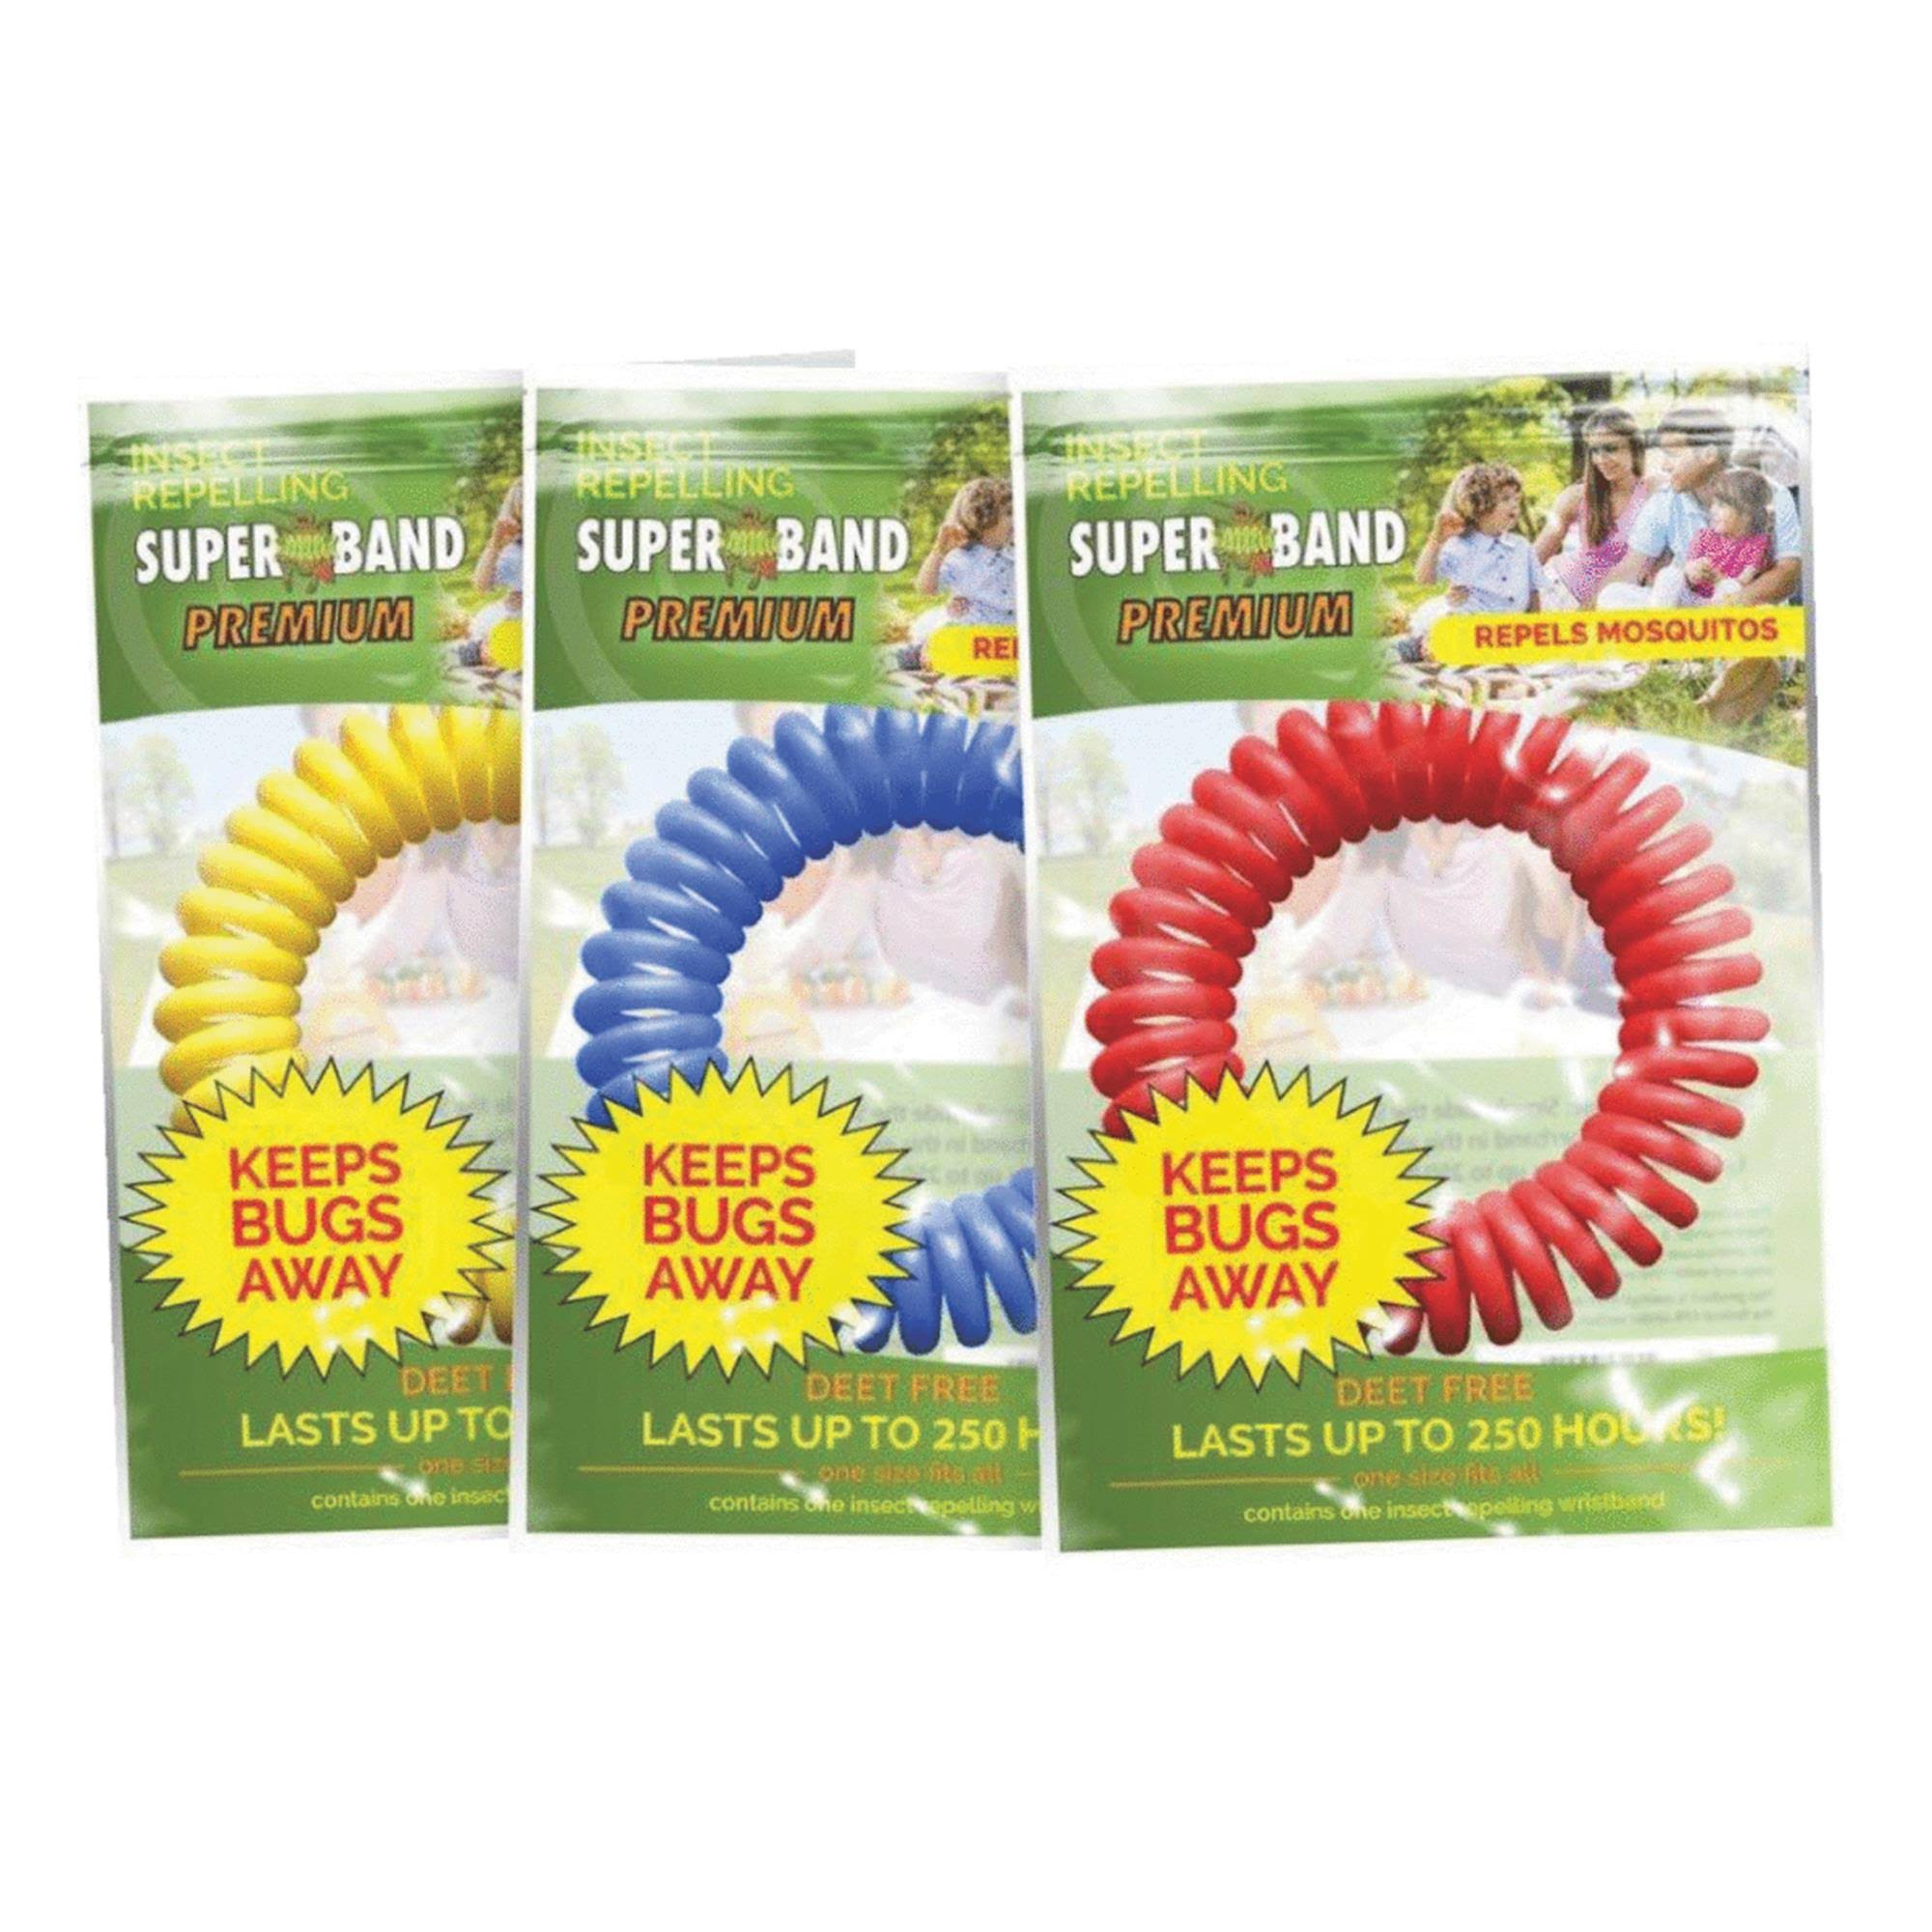 Super Band Premium Mosquito and Insect Repelling Bracelet - Assorted Colors